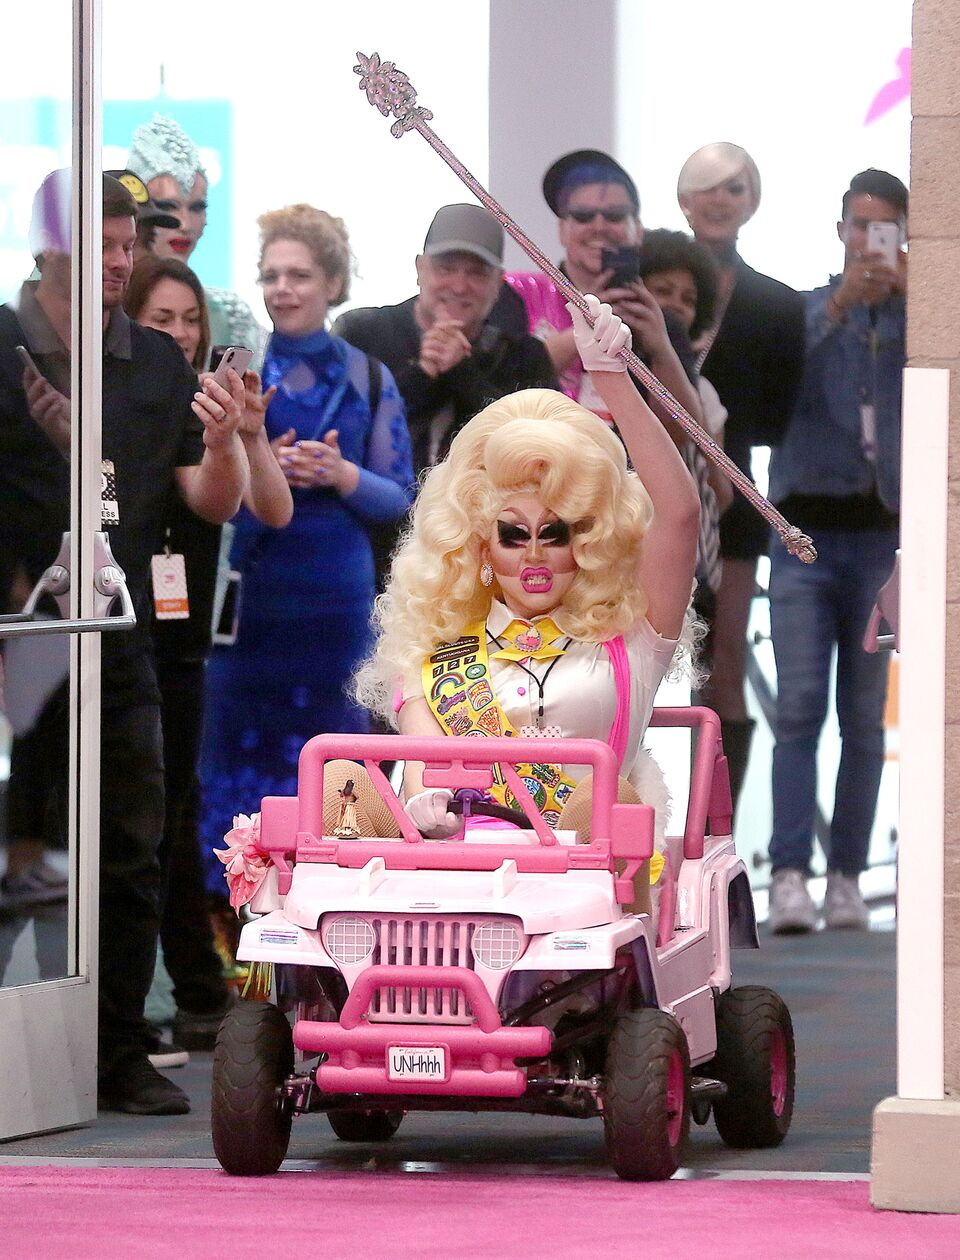 TrixieMattel_Arrival_3Dragcon_05122018_52_preview.jpeg